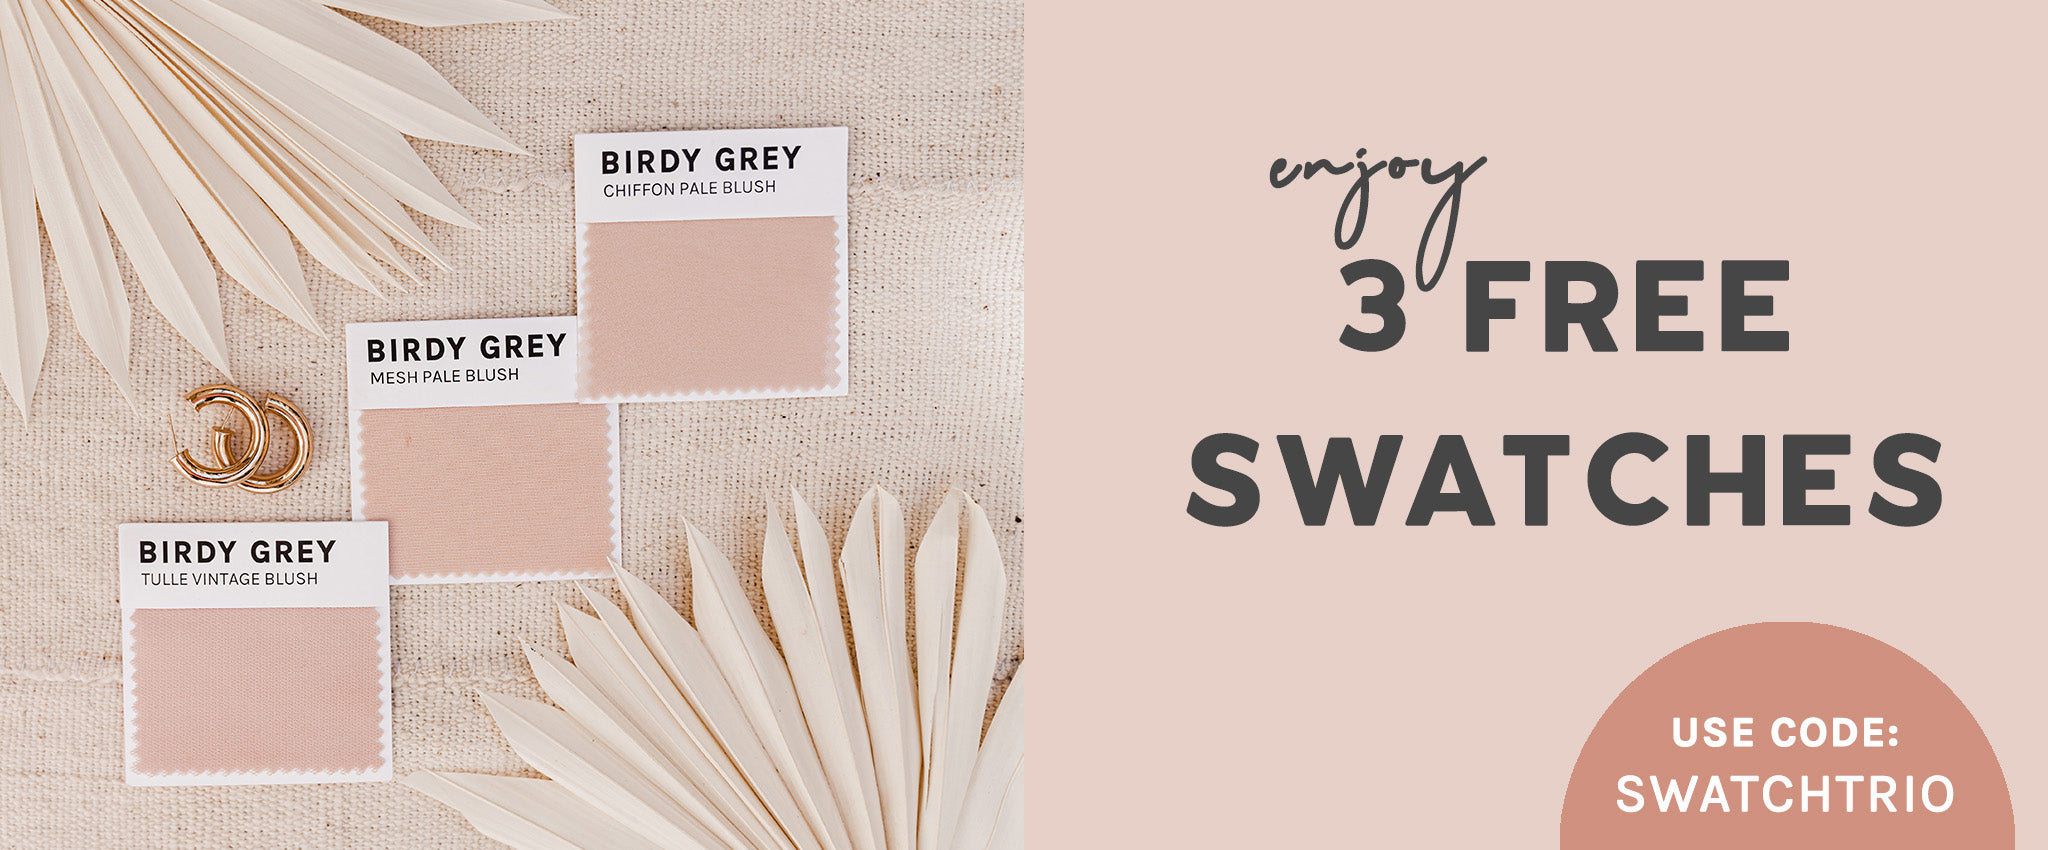 Get 3 Free Swatches